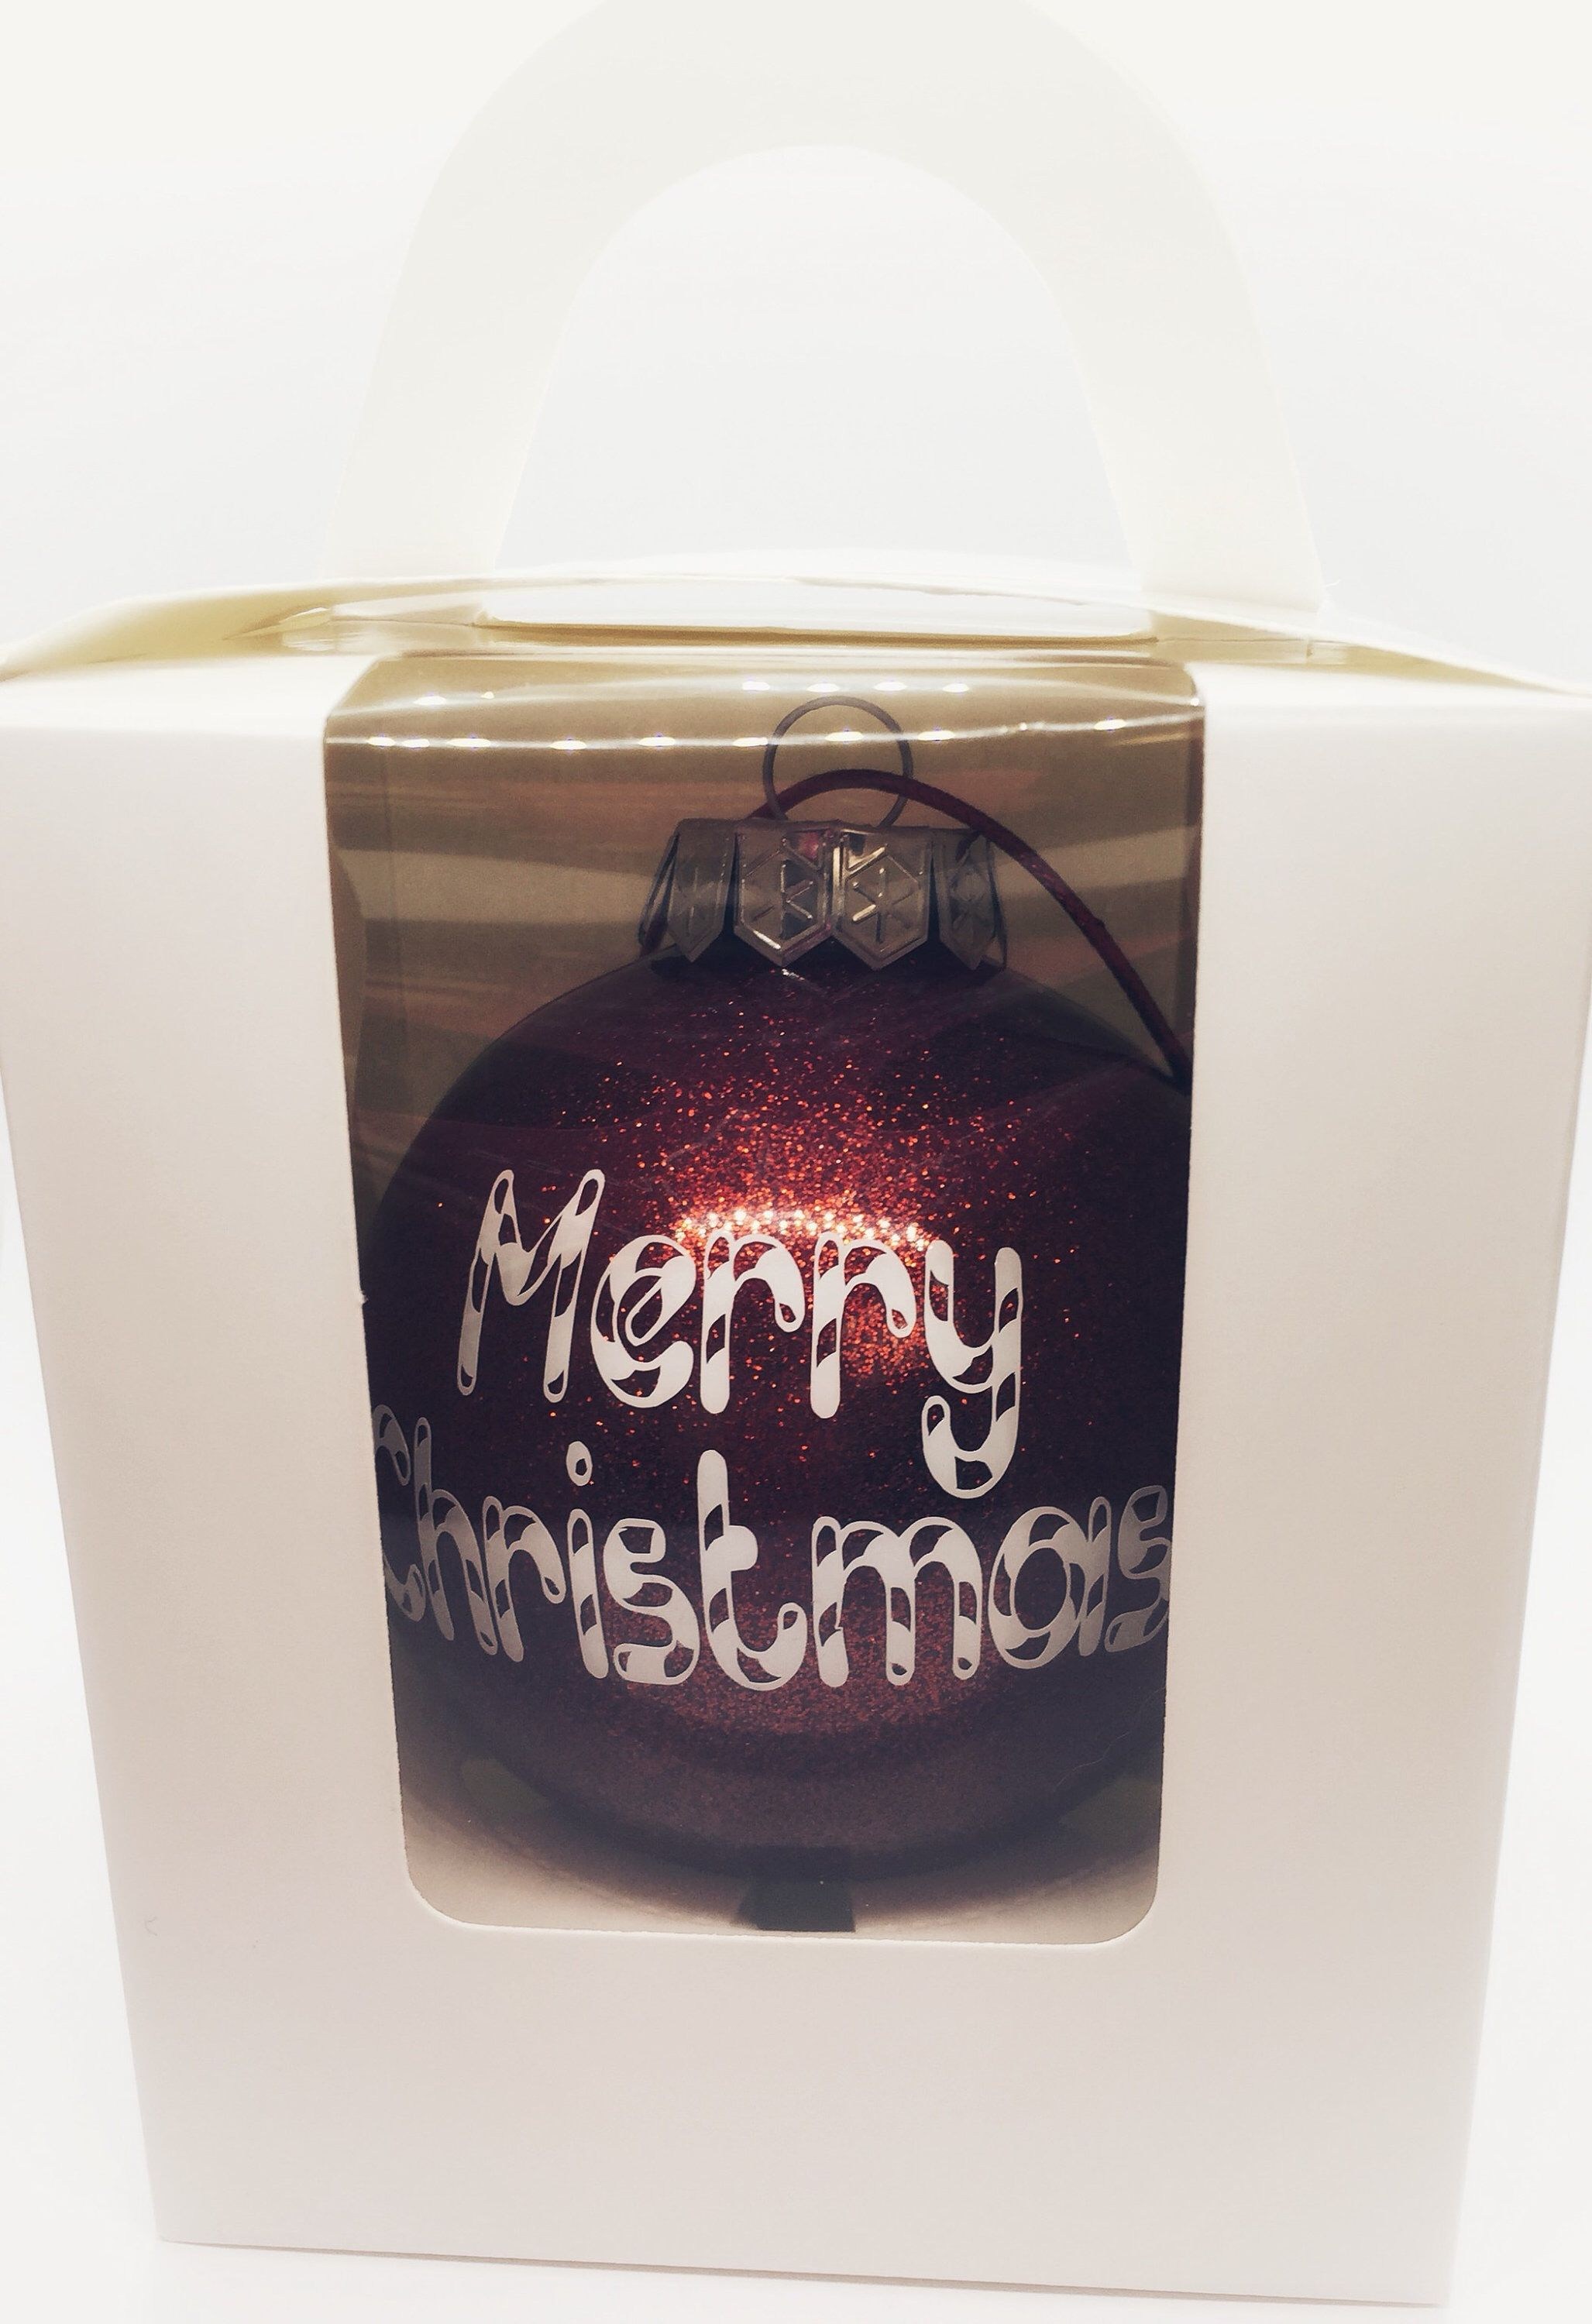 Merry Christmas Large Christmas Glitter Bauble In Gift Box In 5 Colours Buy It Now Merrychristmas Gifts Glitter Christmas Christmas Decorations For The Home